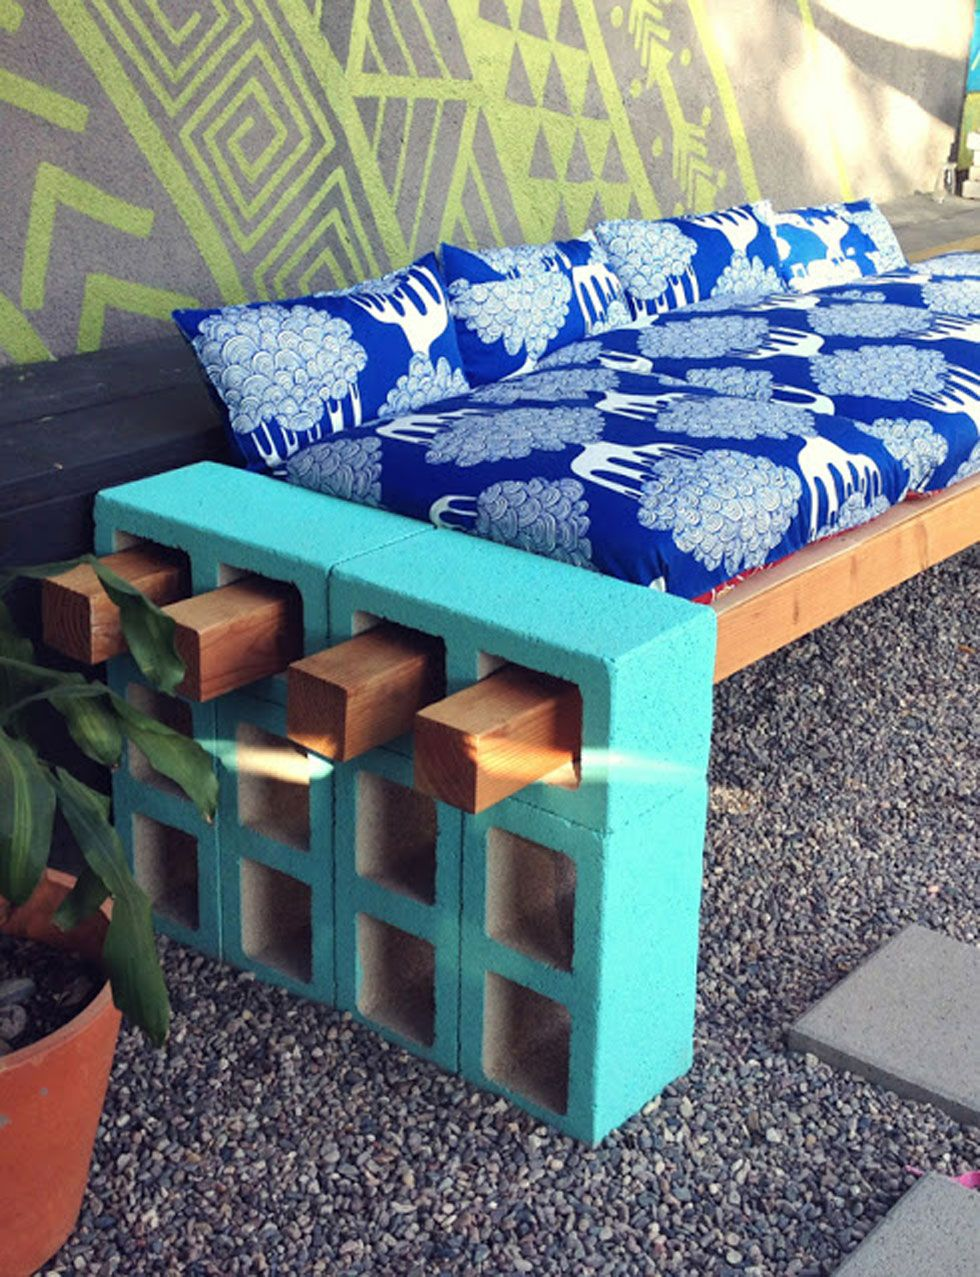 58 Ideas That Will Beautify Your Yard (Without Breaking the Bank ...